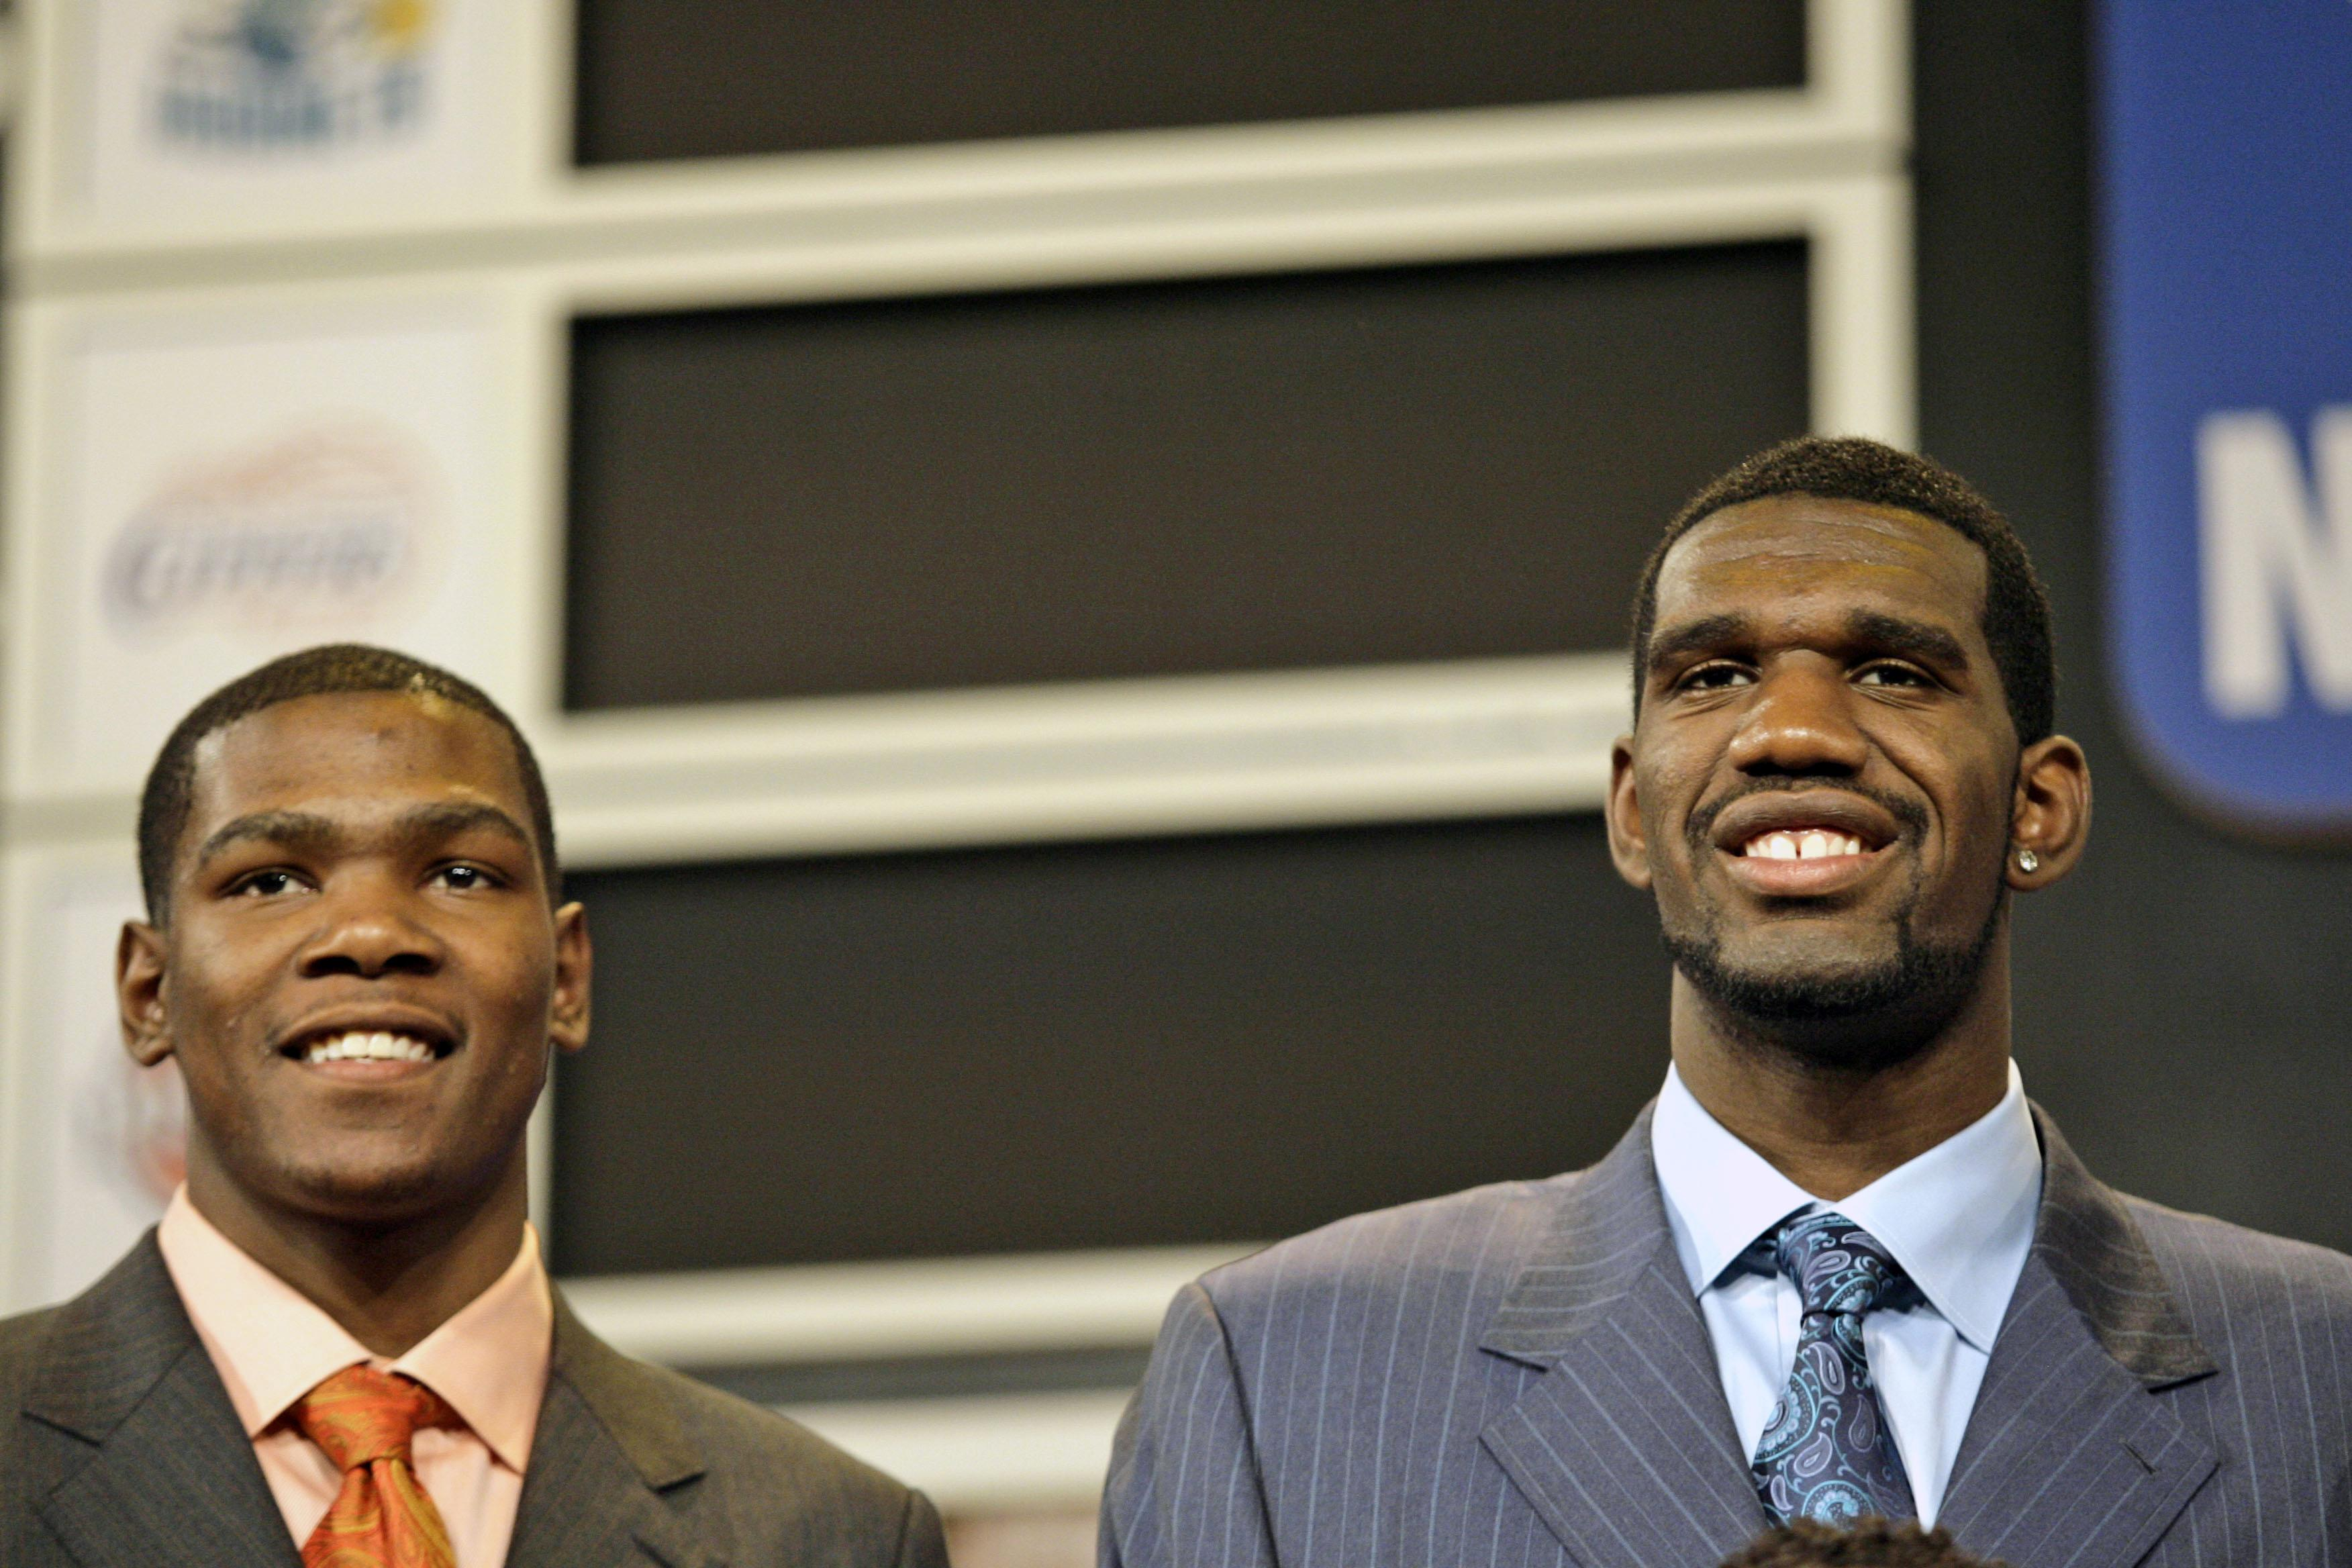 Nba_finals_durant_draft_basketball_72546